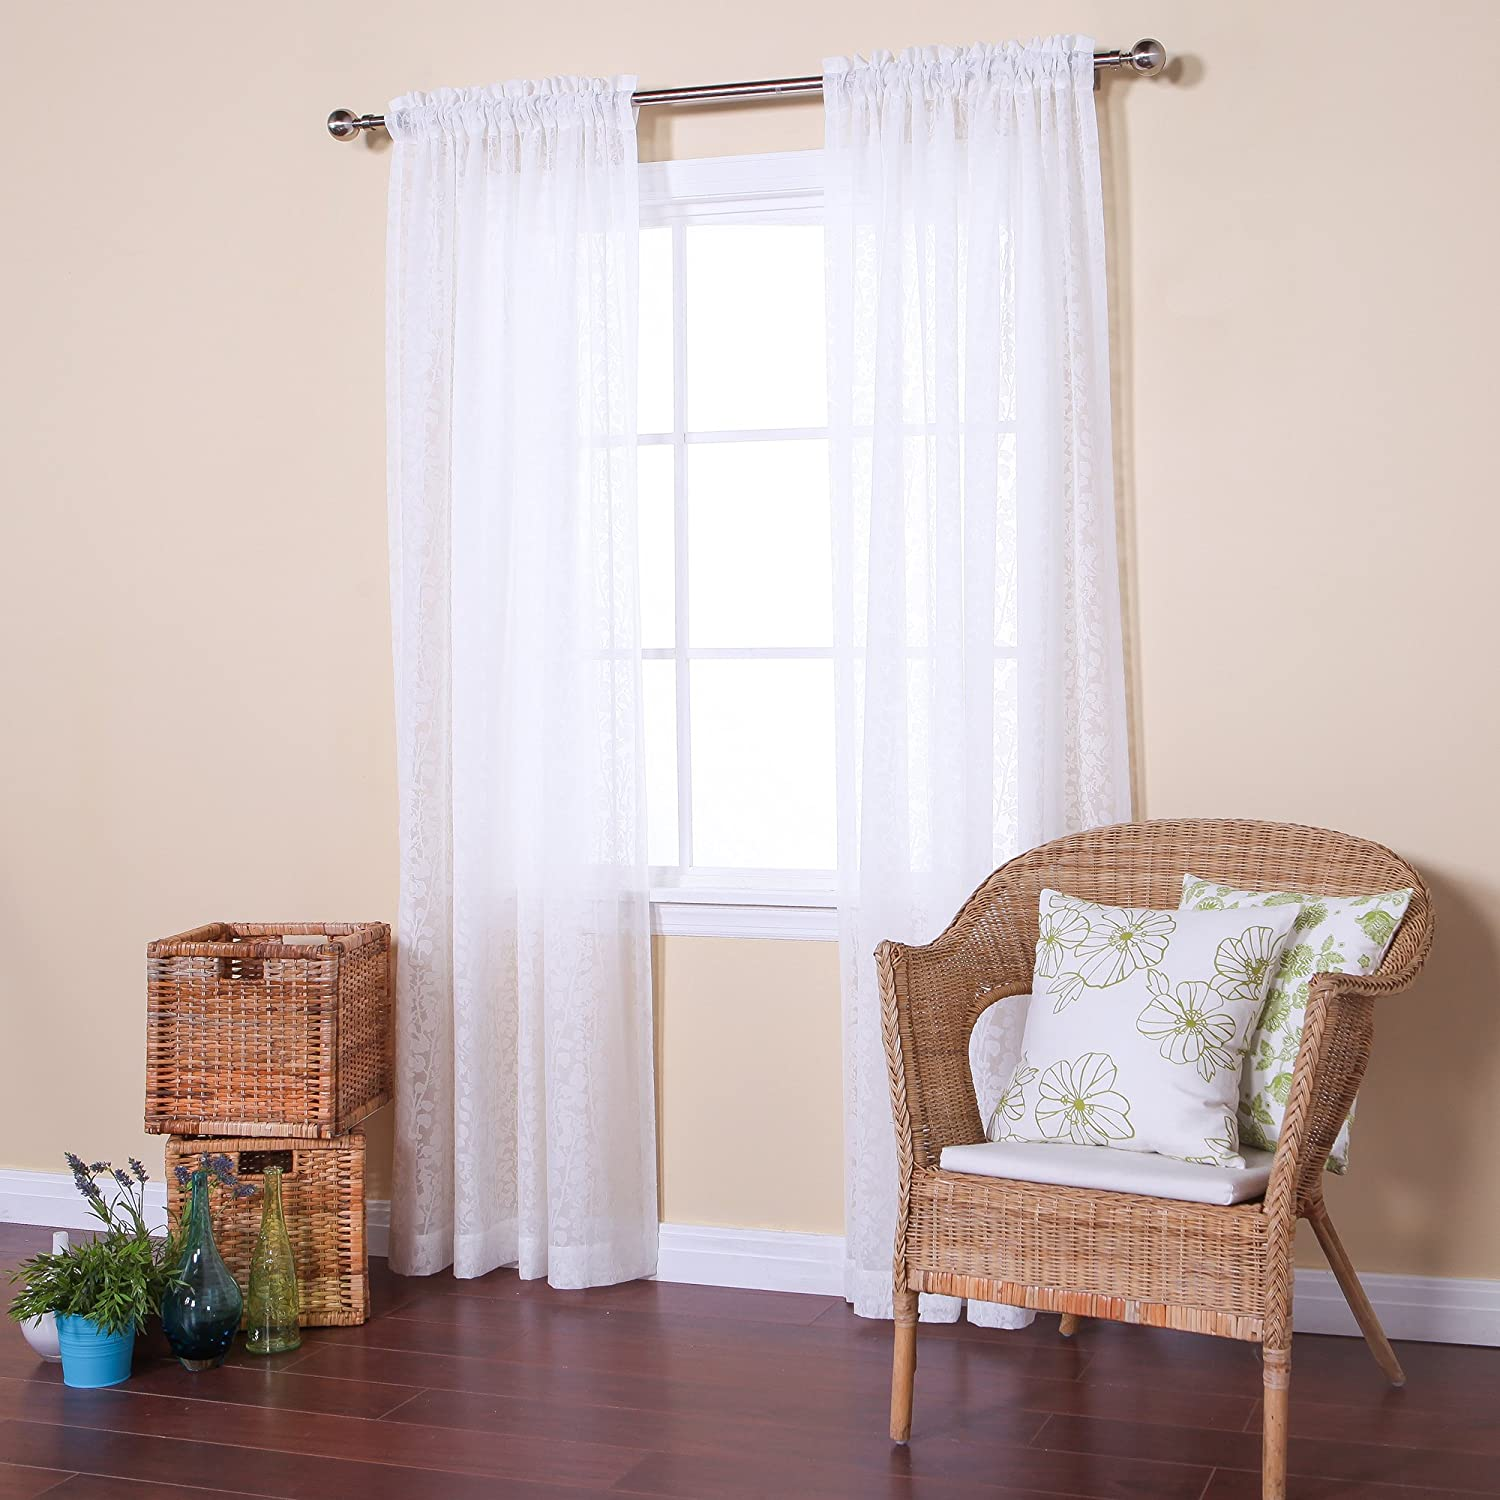 White ruffle curtain - Amazon Com Best Home Fashion Sheer Branch Pattern Curtains Rod Pocket White 54 W X 84 L Set Of 2 Panels Home Kitchen